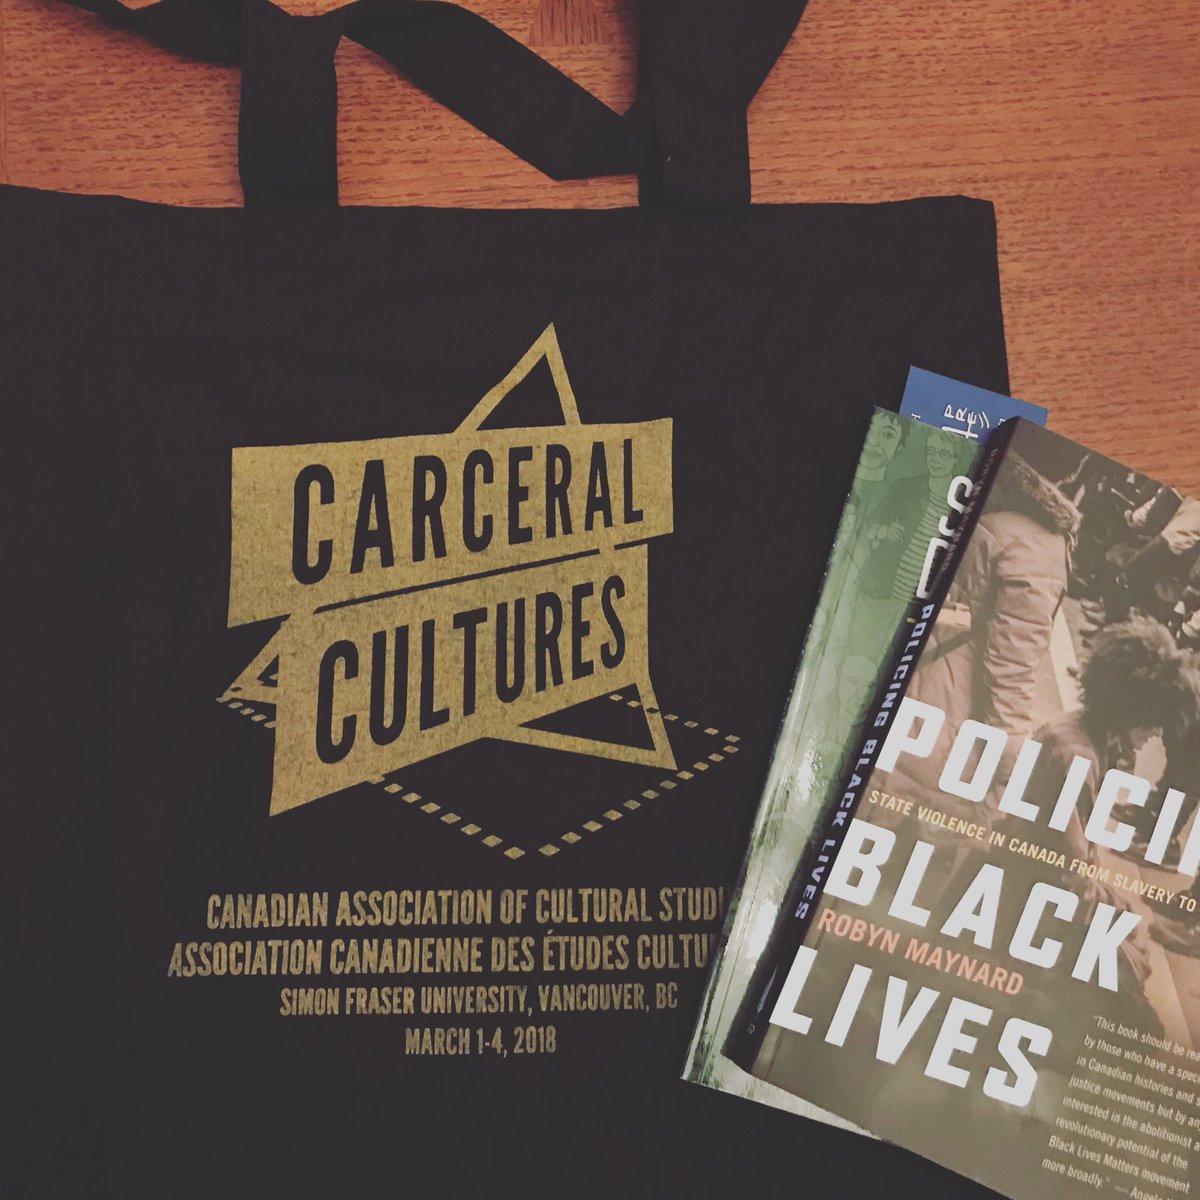 carceral cultures - book bag and book - march 2018.jpg